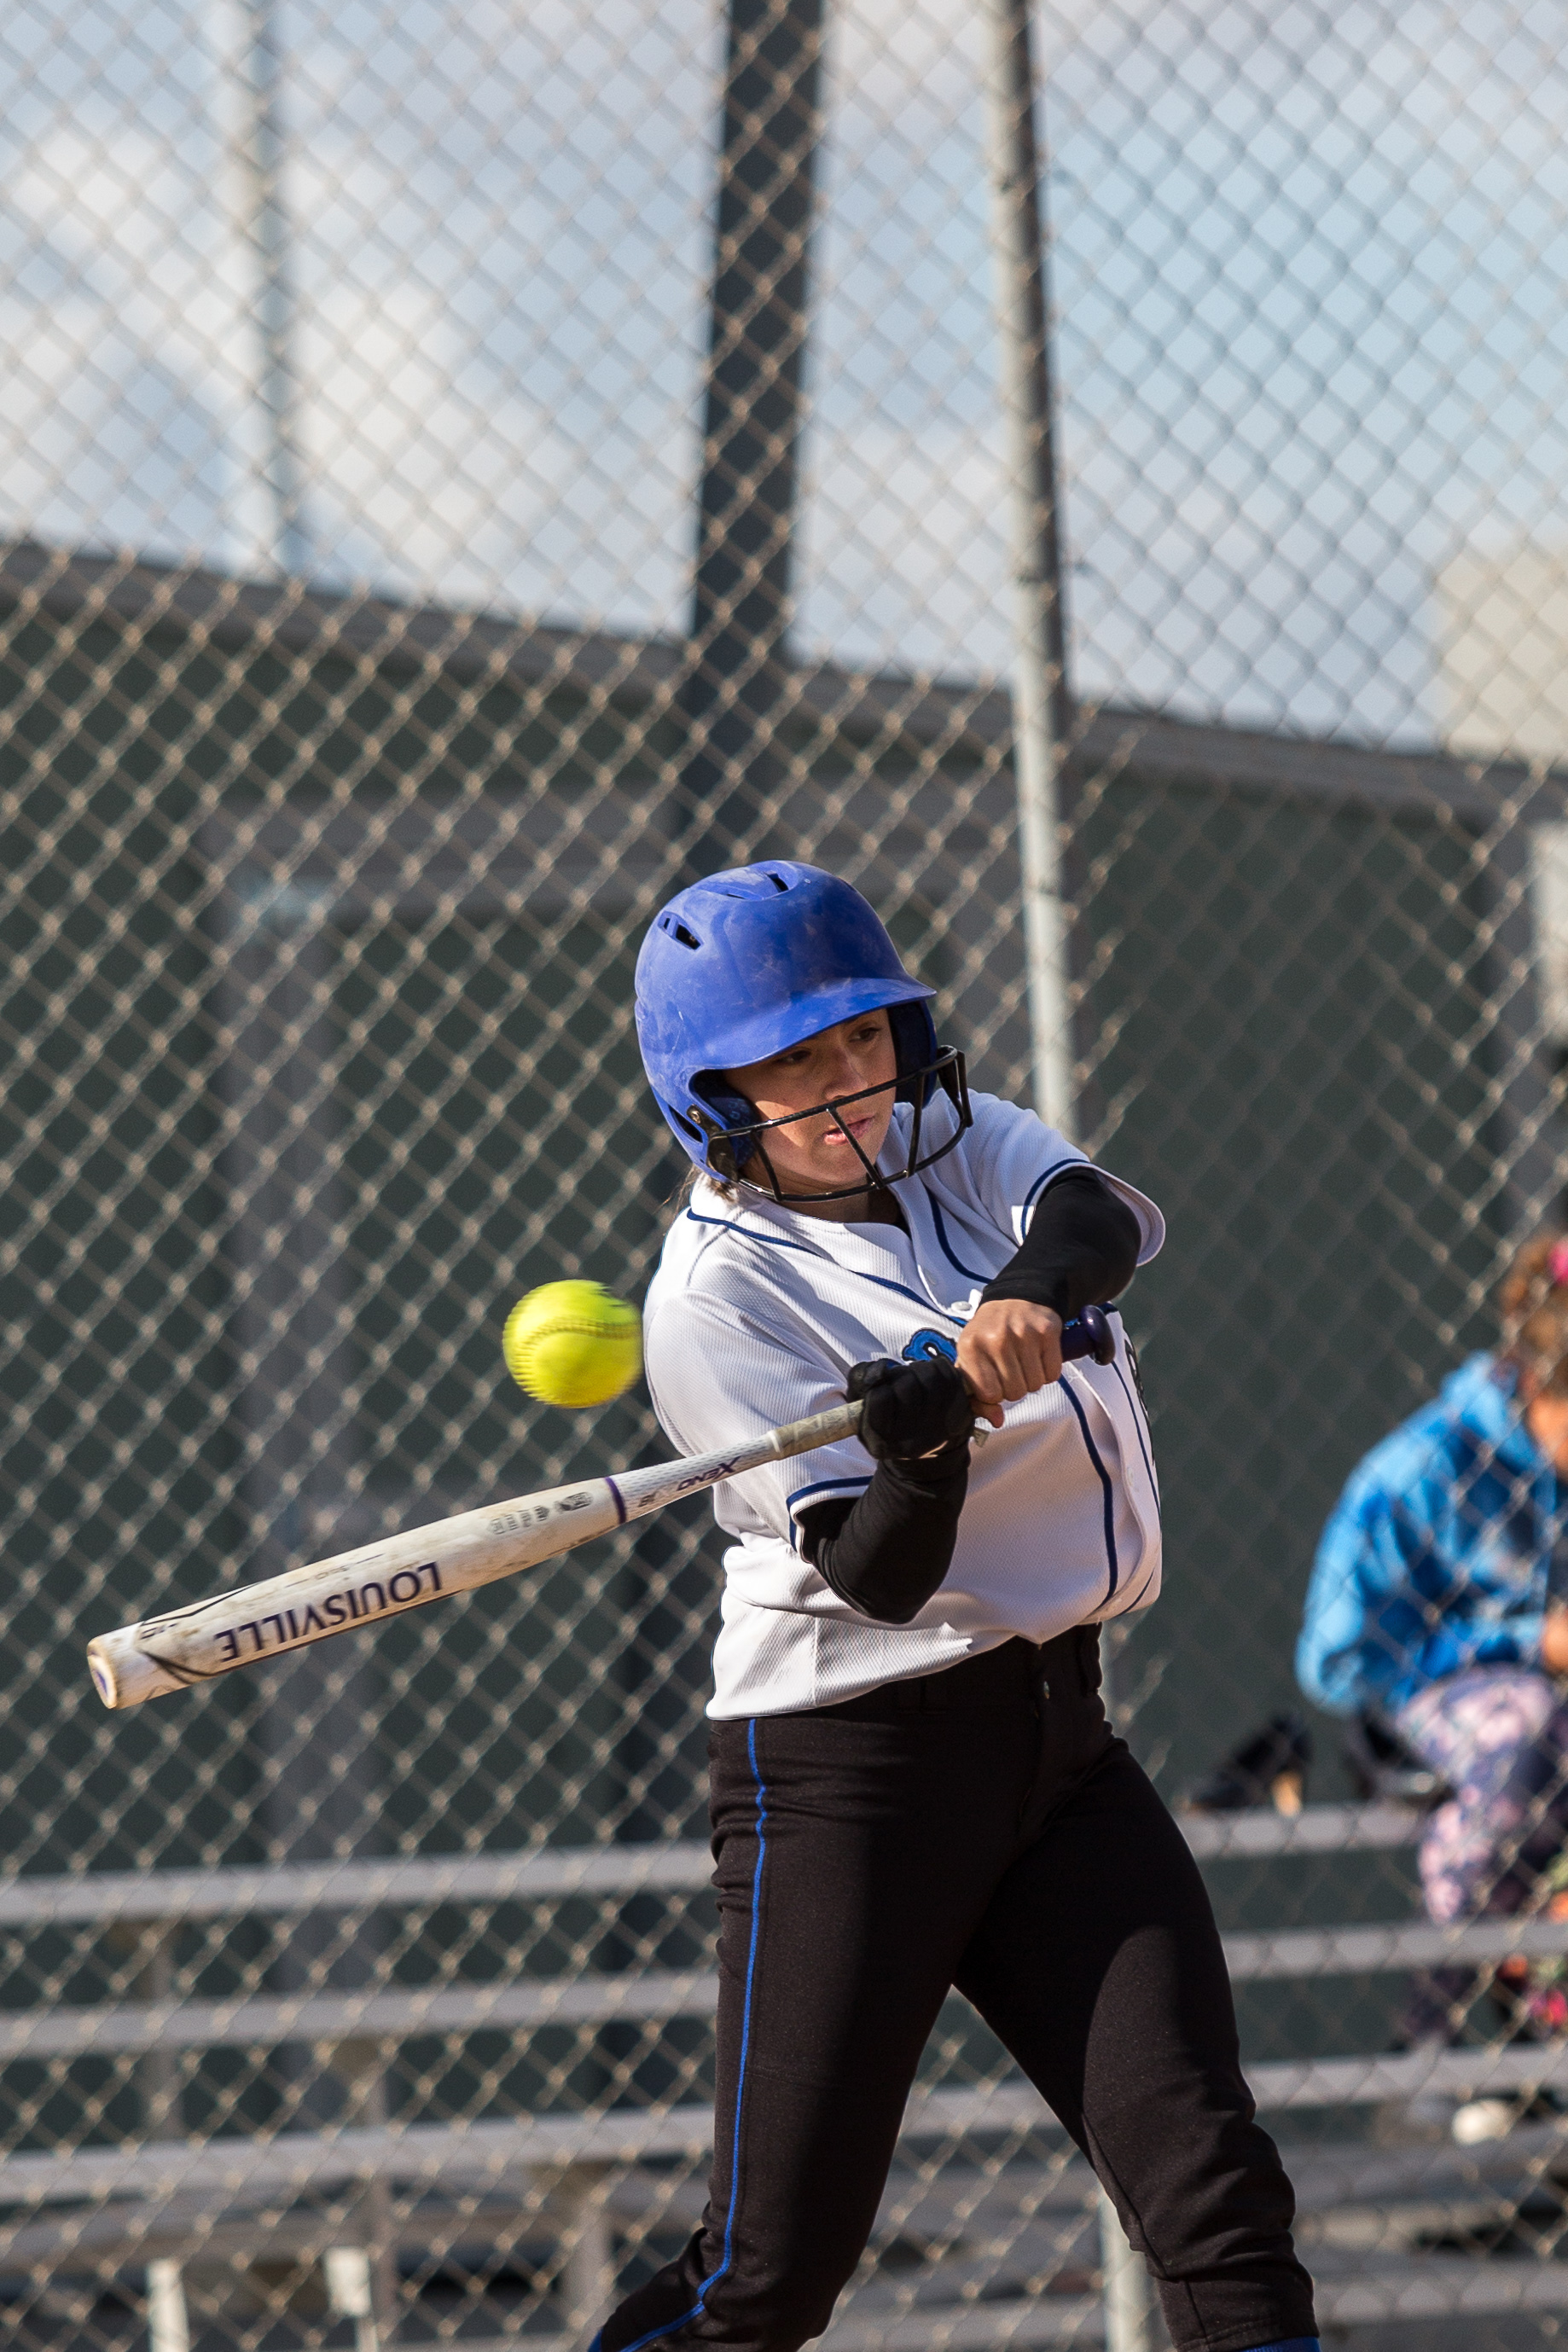 Santa Monica College Corsair freshman outfielder Aliza Chacon (#24, white) hits a single at the bottom of the 3rd at the Corsair Field in Santa Monica California, on Tuesday, February 27 2018. The Corsairs would go on to lose the game 0-14 against the Ventura College Pirates. (Corsair Photo: Matthew Martin)